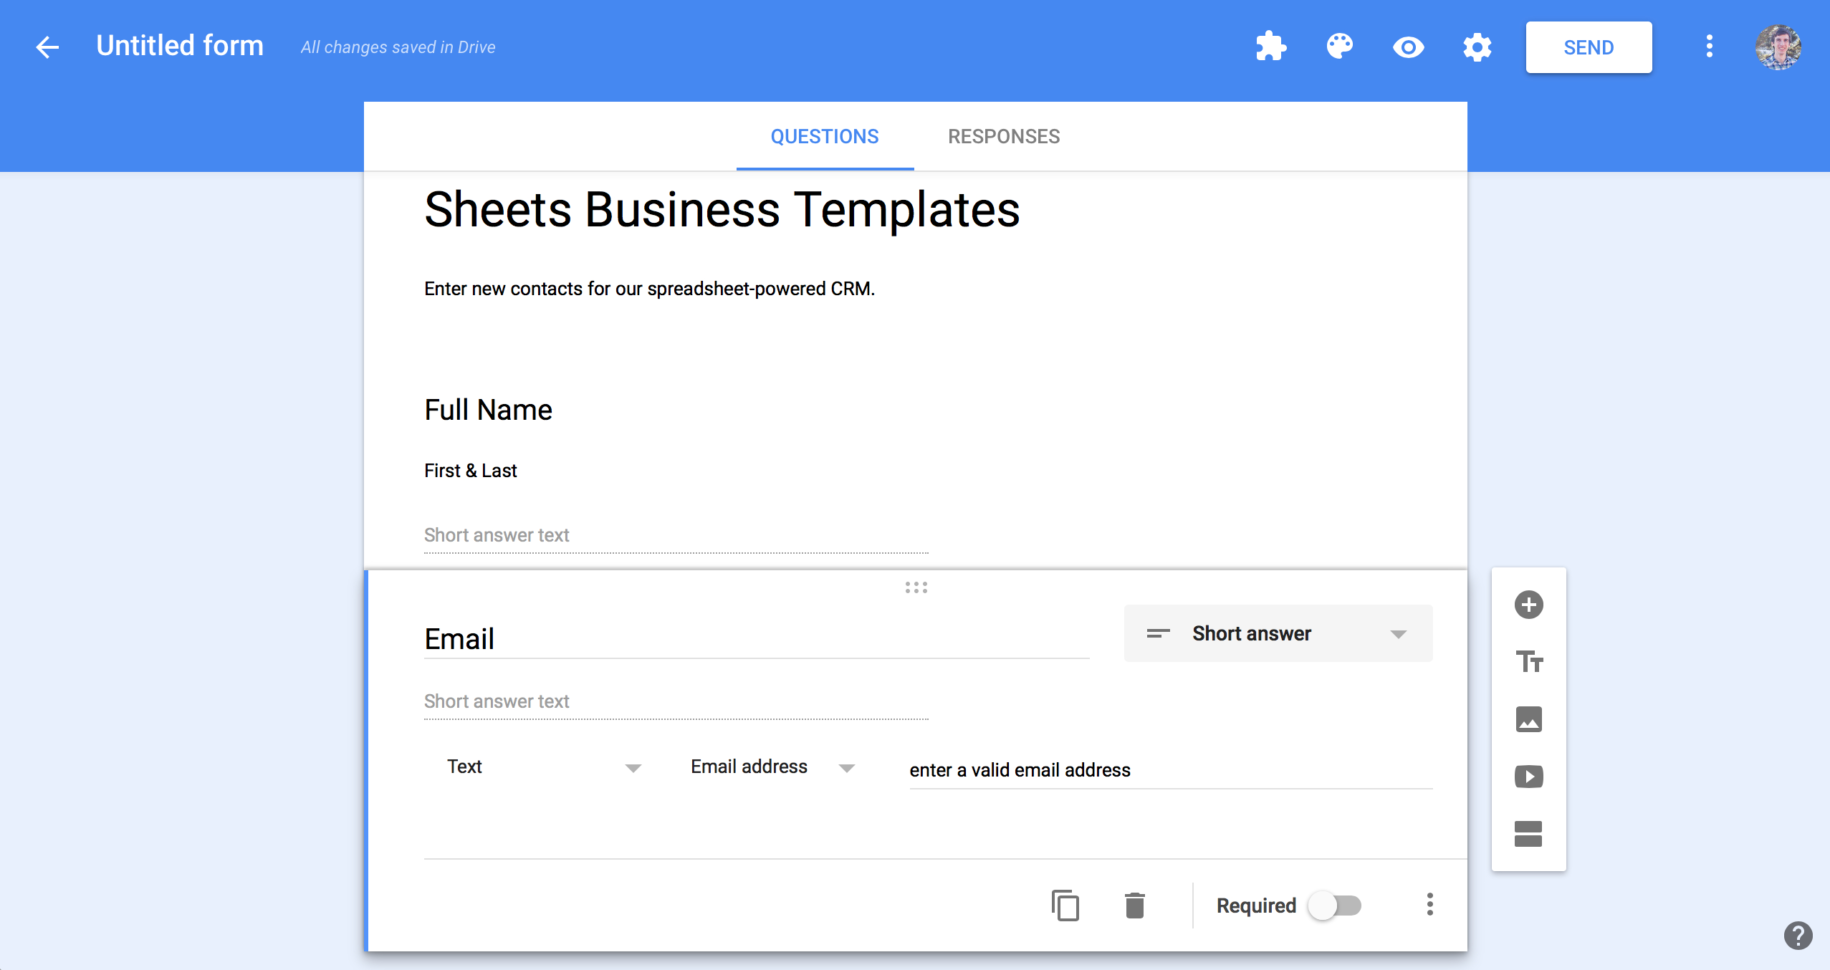 Referral Tracking Spreadsheet Free In Spreadsheet Crm: How To Create A Customizable Crm With Google Sheets